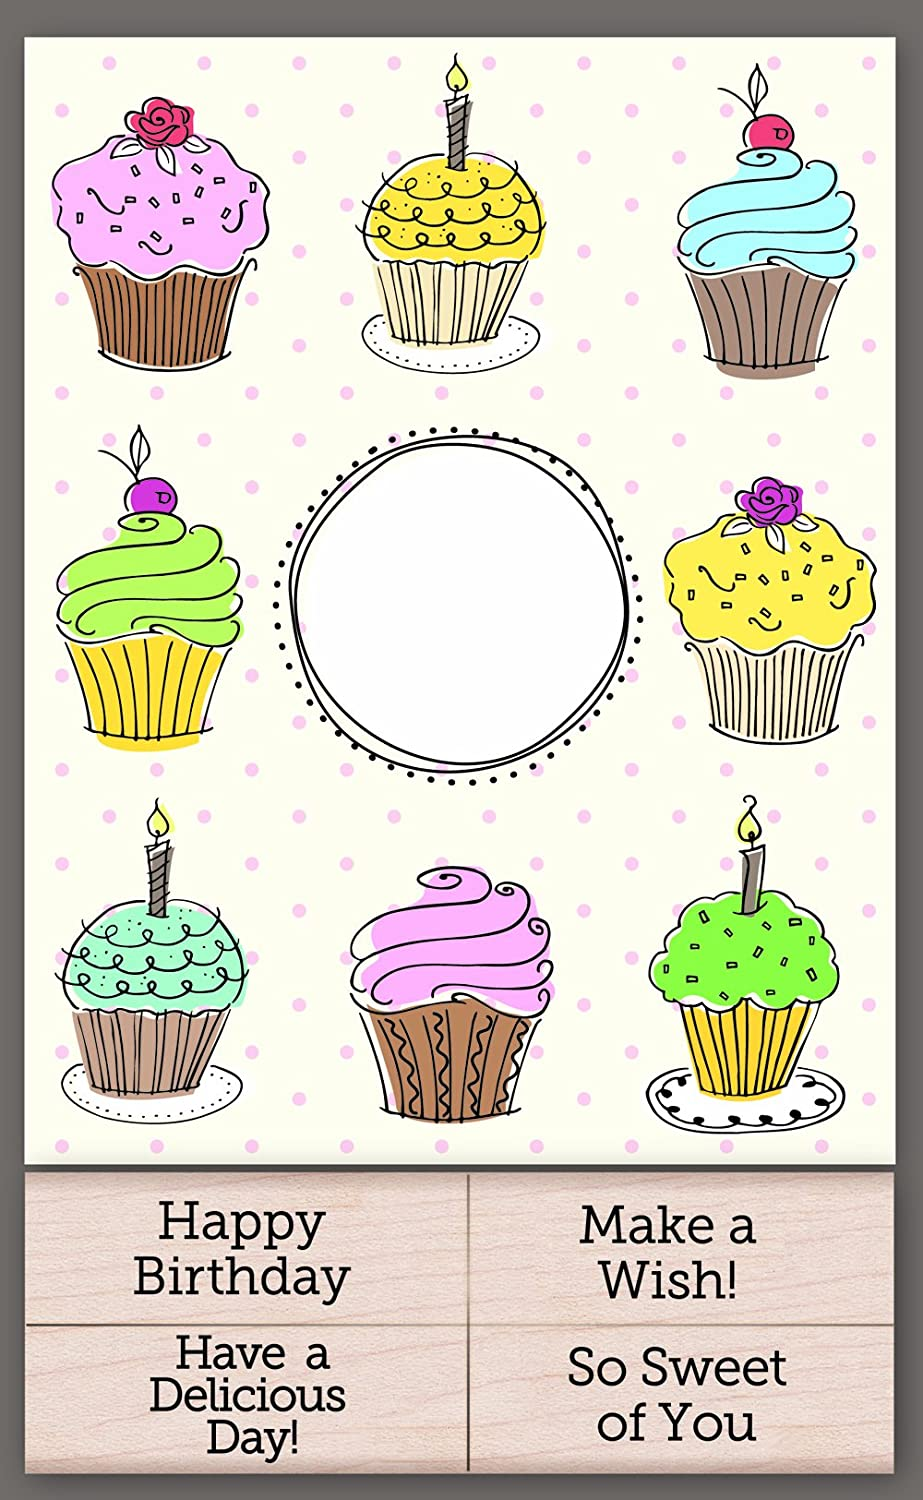 Hero Arts Add Your Message Cupcake Cards with Messages